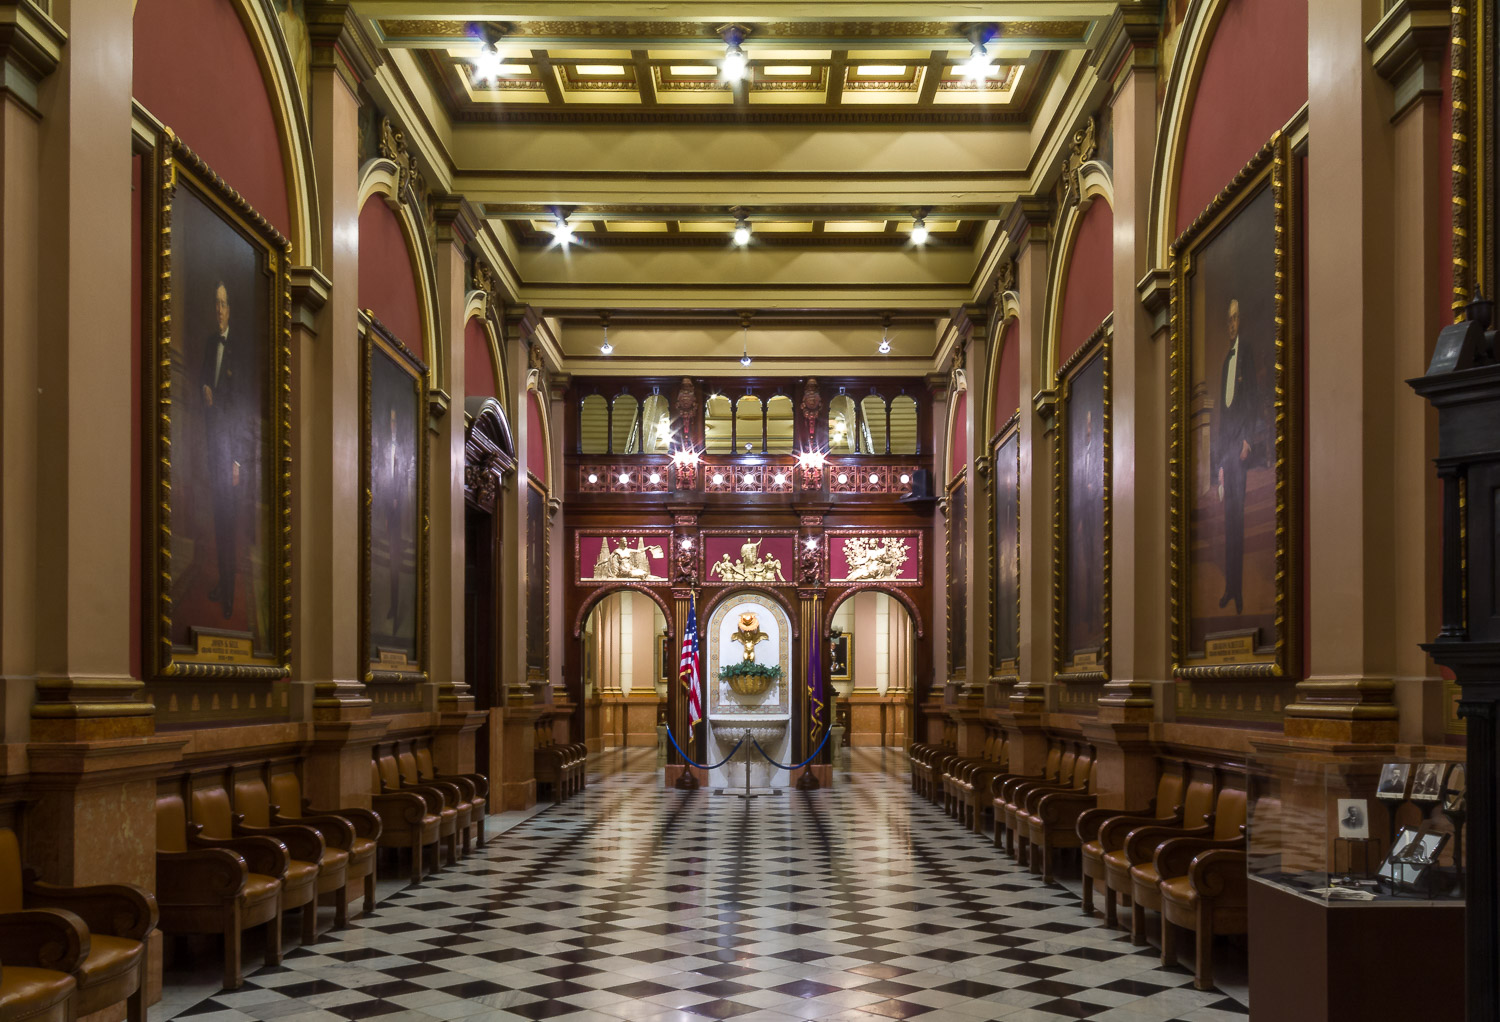 The Grand Foyer at the Masonic Temple in Philadelphia, Pennsylvania